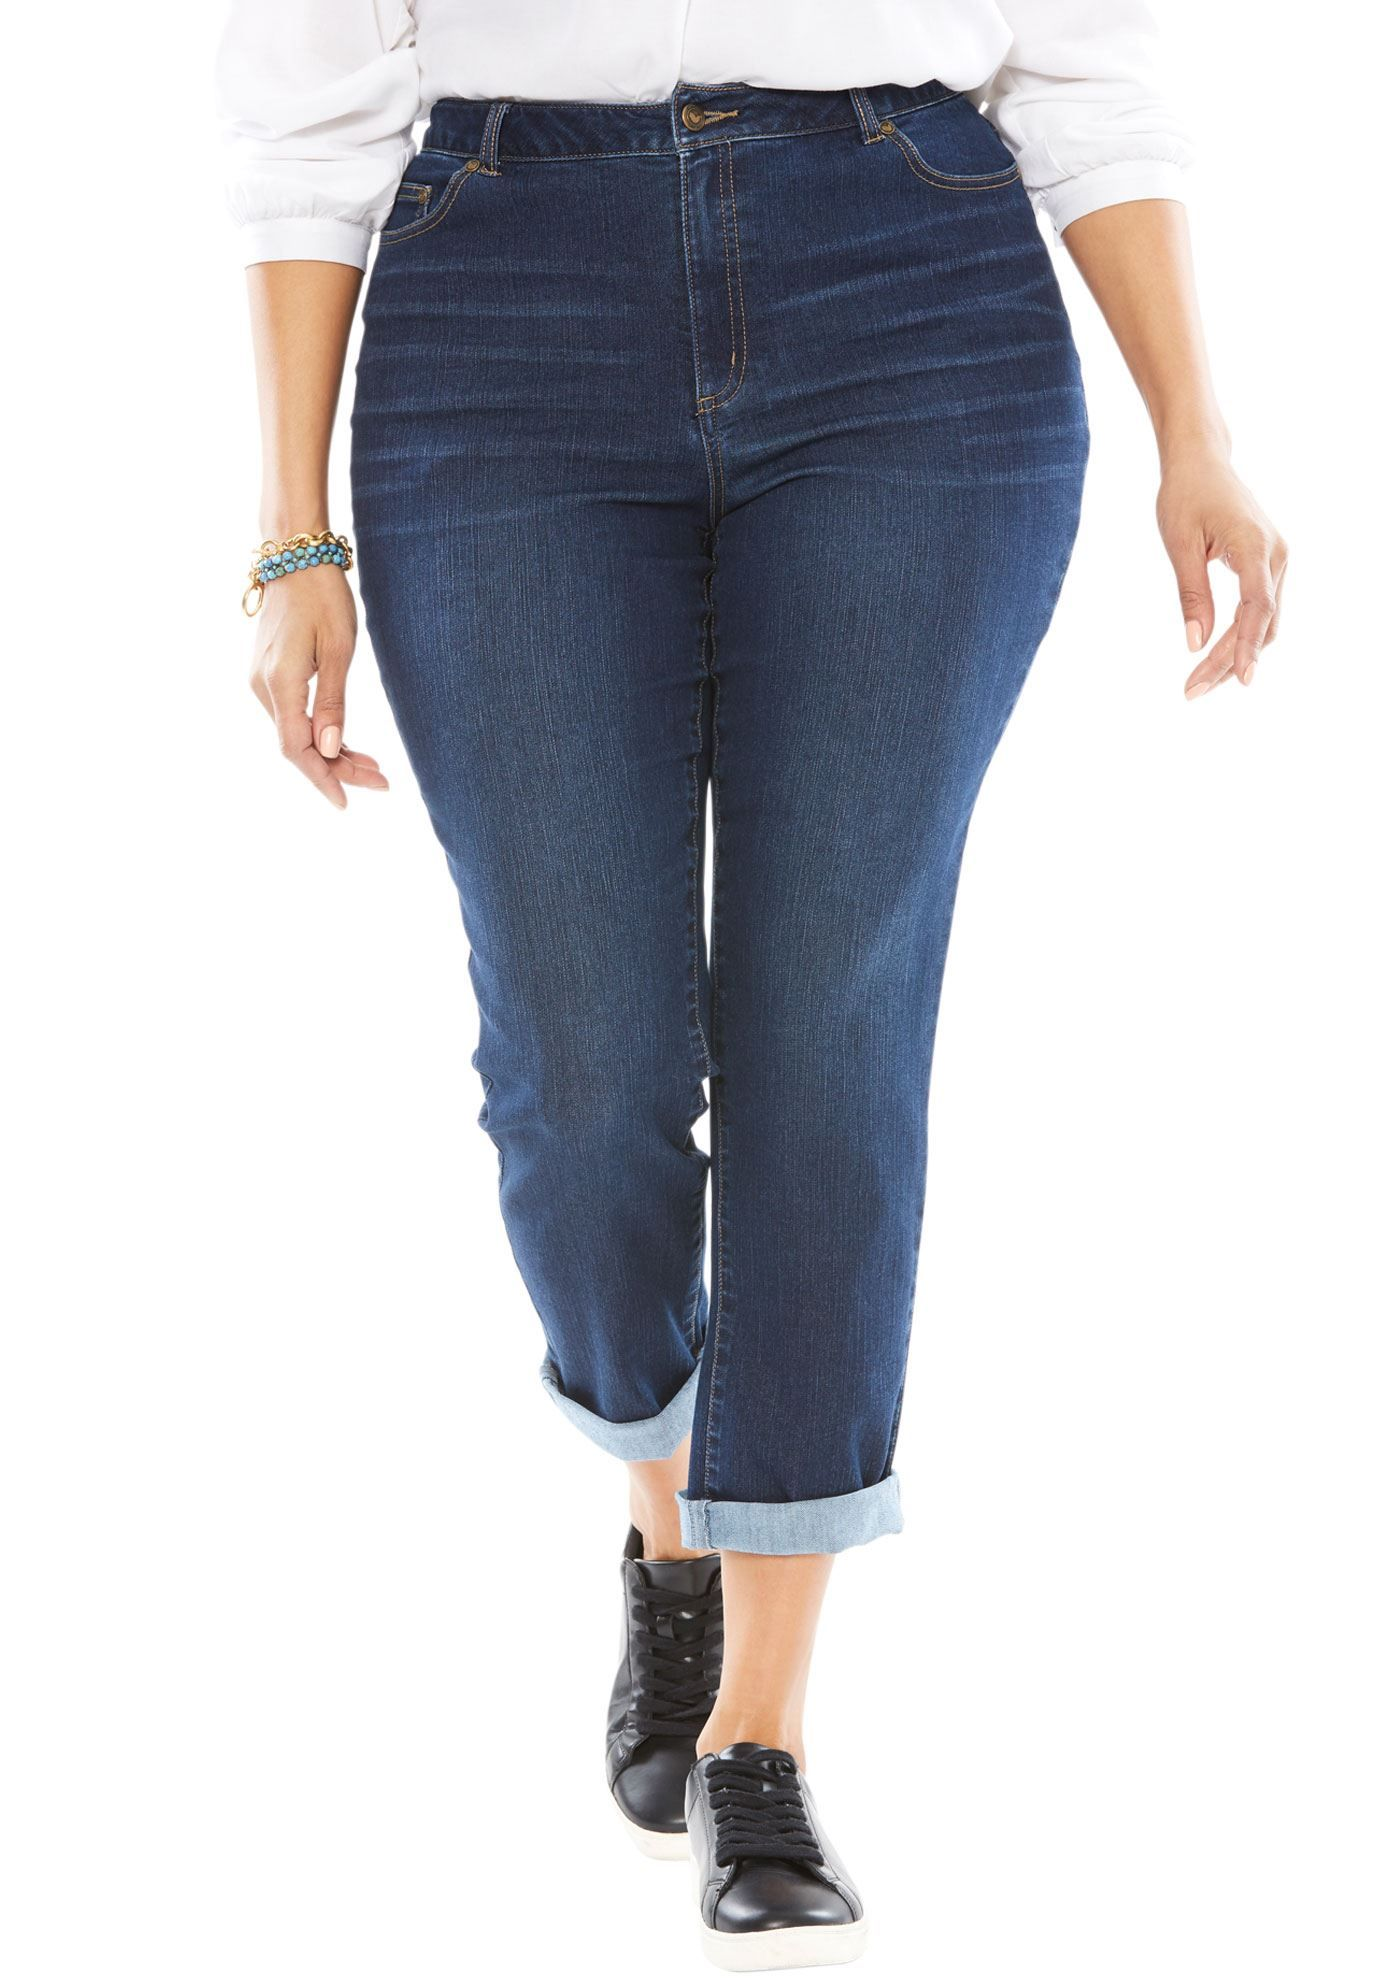 petite-women-stretch-jeans